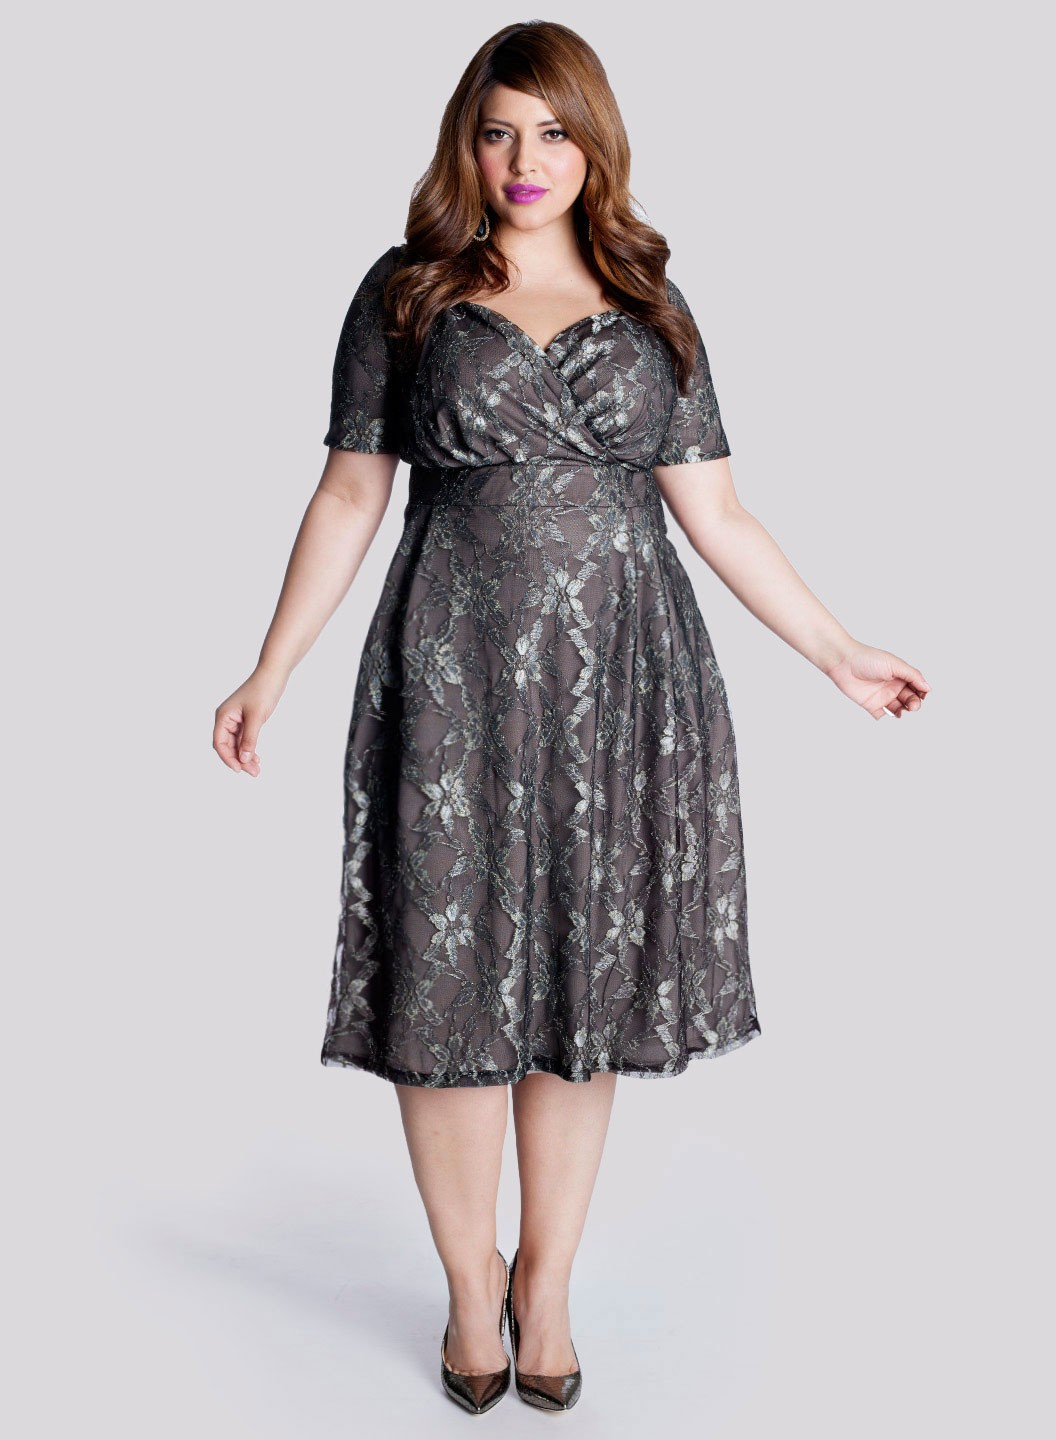 Dress plus size formal